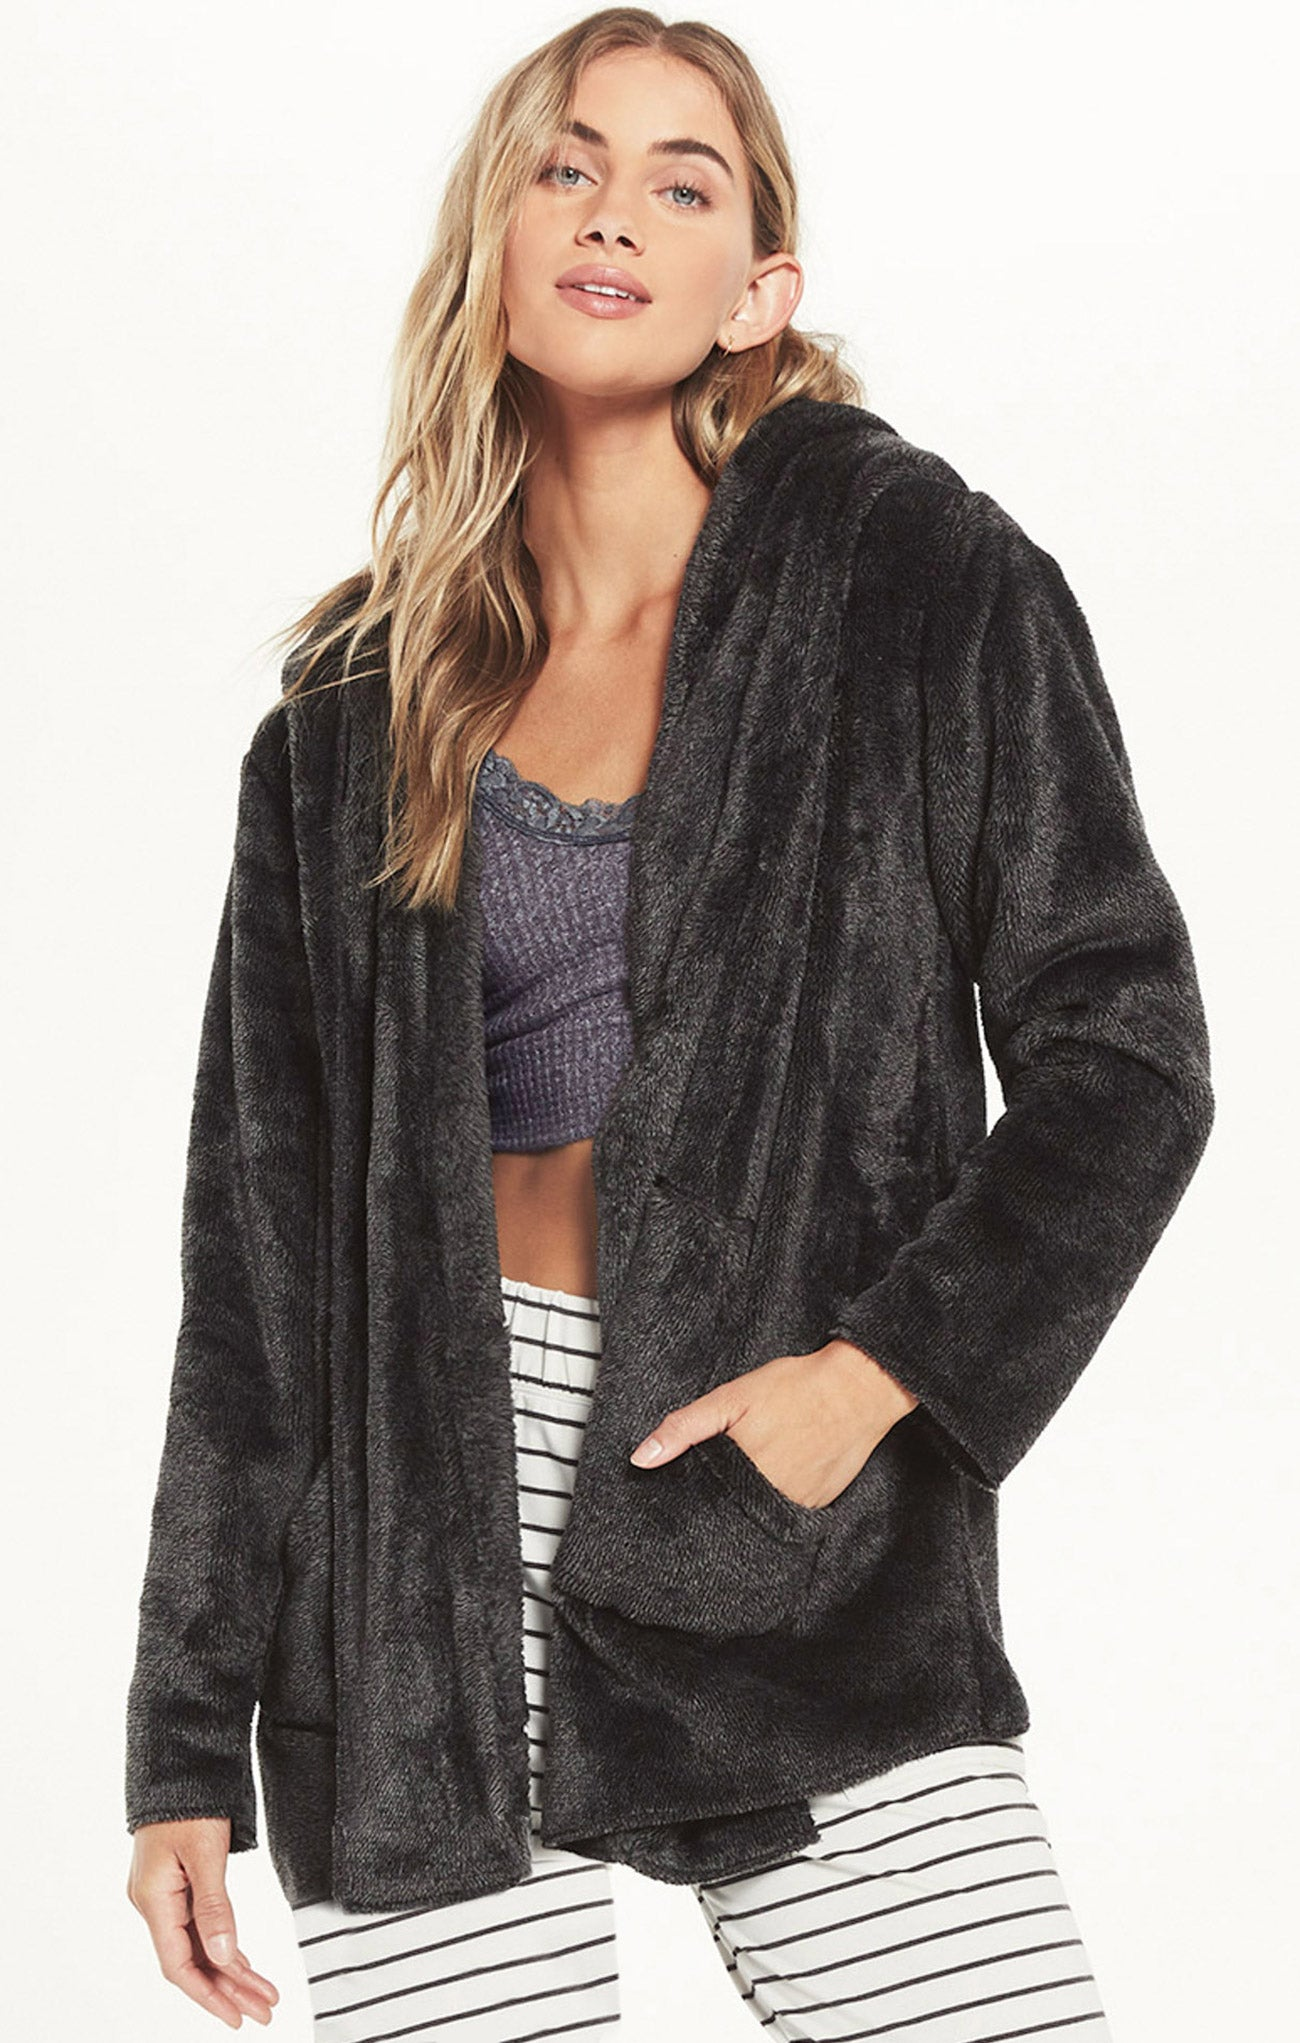 Jackets Cozy Feels Plush Cardigan Charcoal